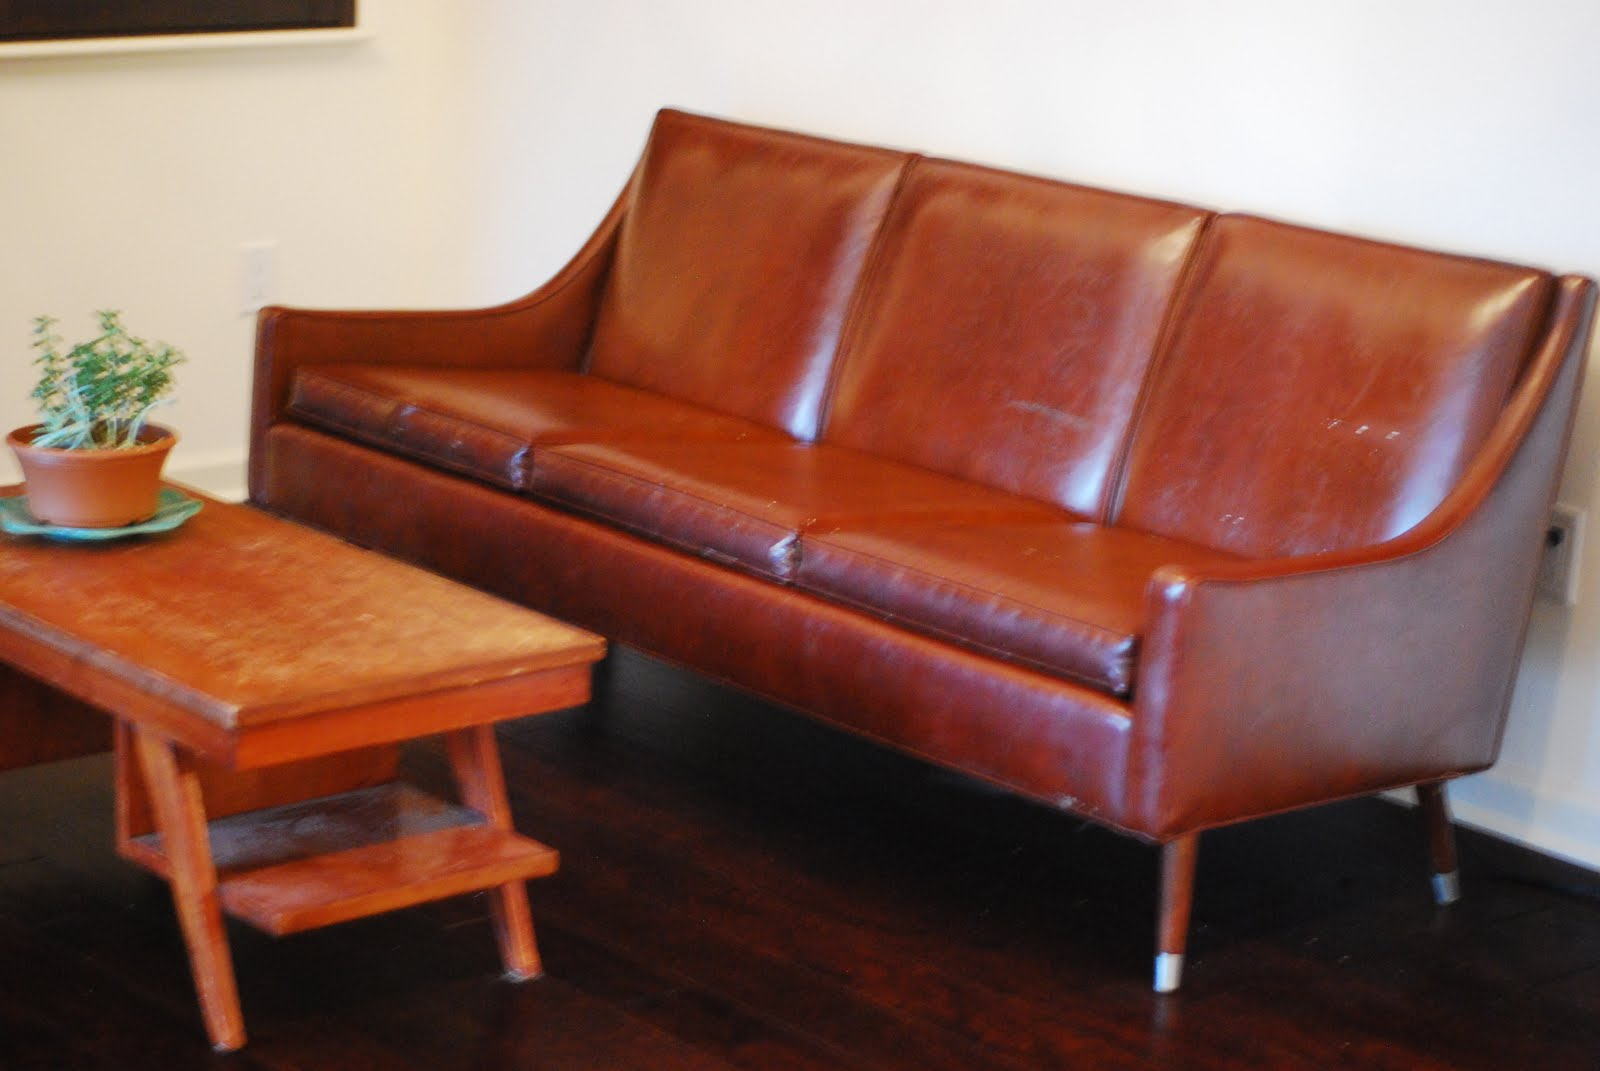 Retro Orange Vinyl Sofa Vintage Red Vinyl Sofa Transport My Vintage Vinyl Couch To